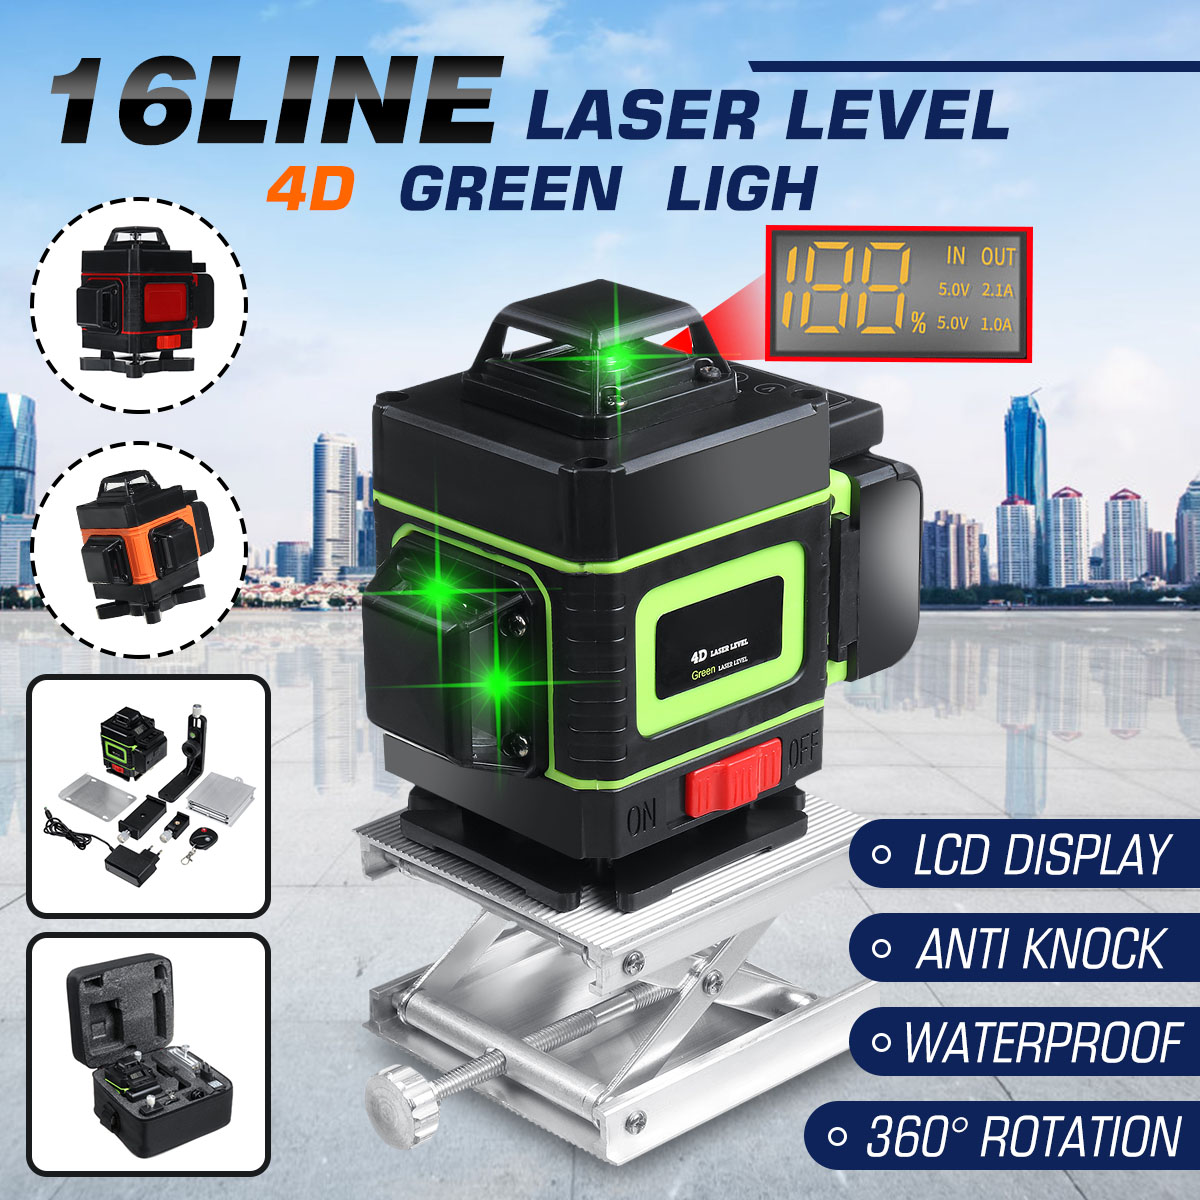 16 Lines Laser Level 4d Self Leveling 360 Horizontal And Vertical Cross Super Powerful Green Laser Beam Line Measurement Tools Best Deal 363b0 Cicig